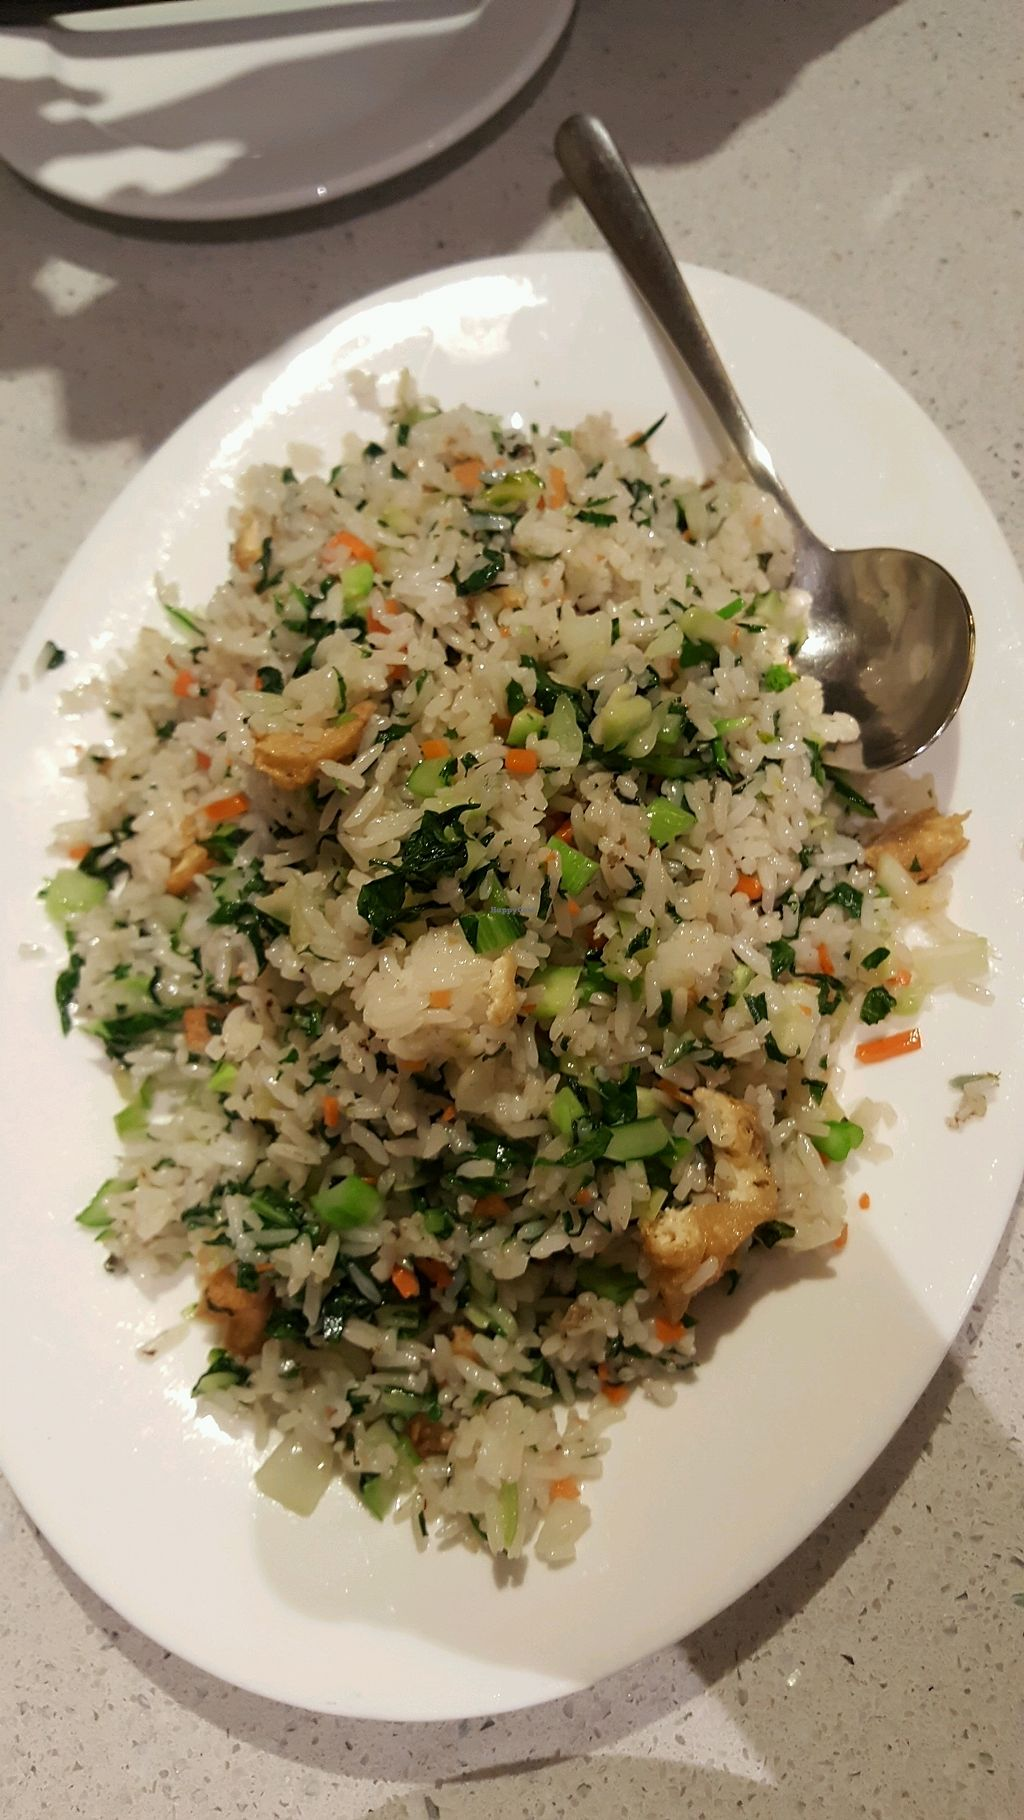 """Photo of King's Cafe  by <a href=""""/members/profile/Brit87"""">Brit87</a> <br/>fried rice  <br/> February 18, 2018  - <a href='/contact/abuse/image/17836/360664'>Report</a>"""